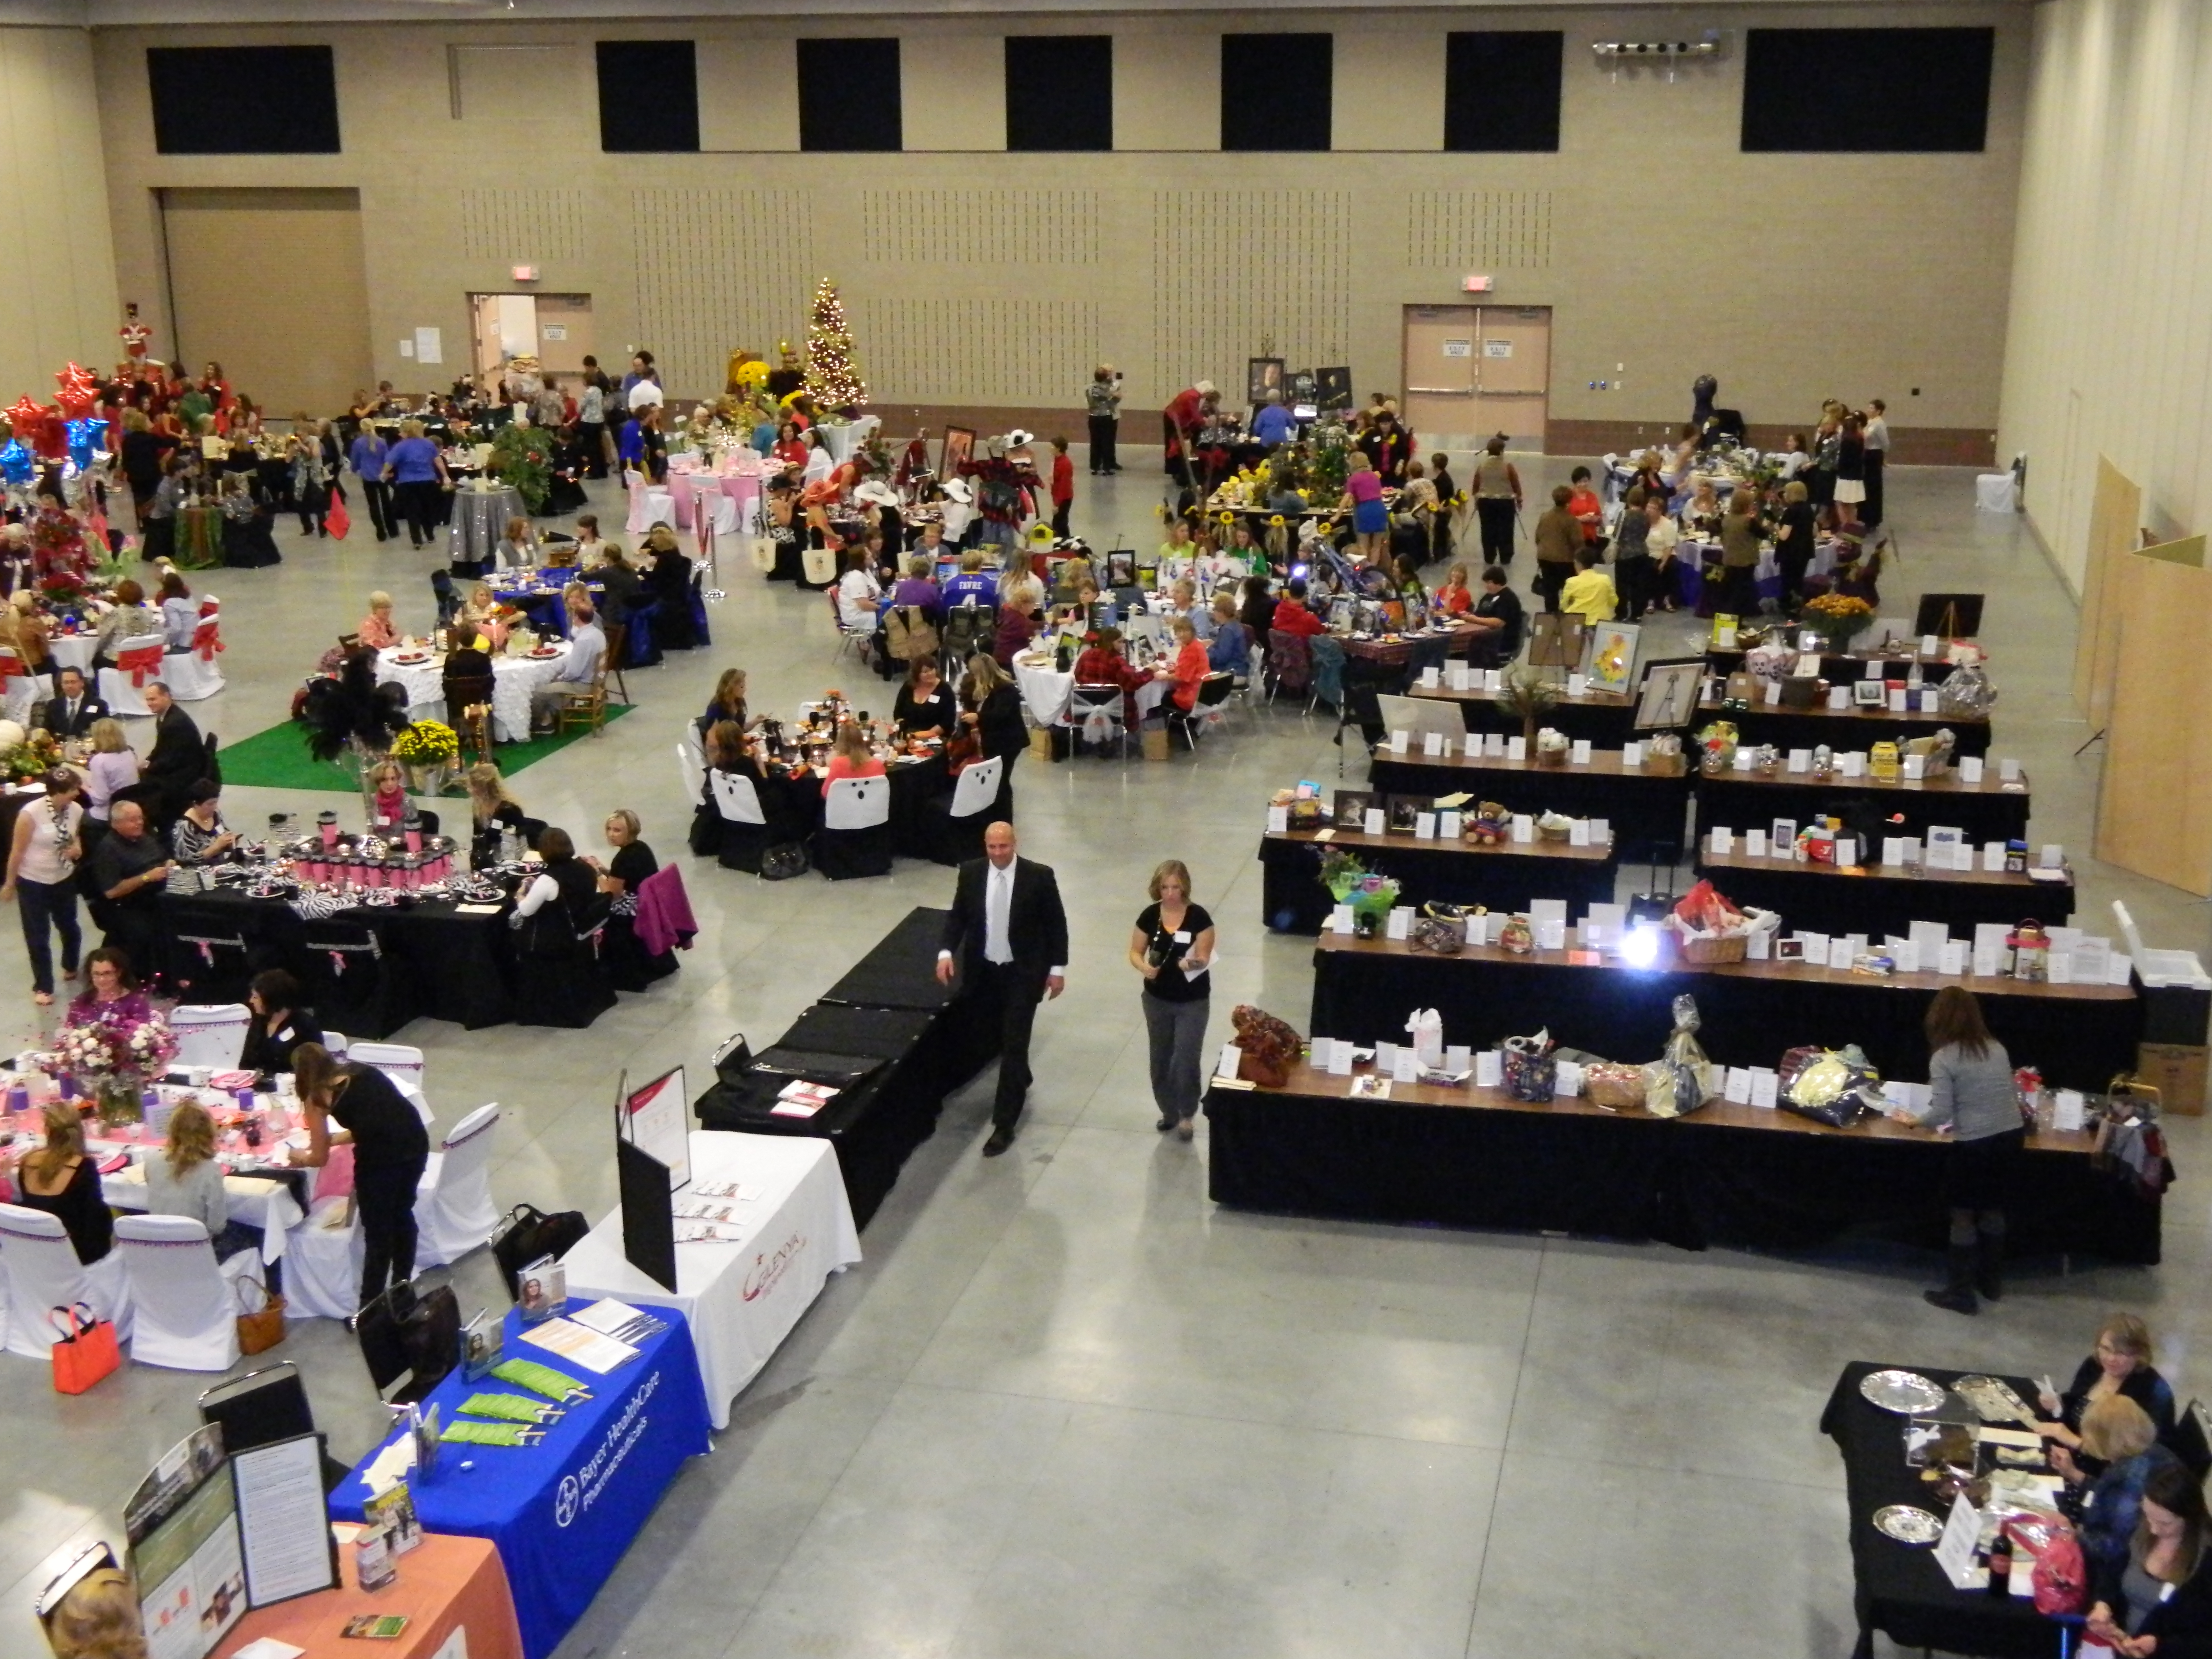 Aerial view of people dining, as well as silent auction tables in convention hall